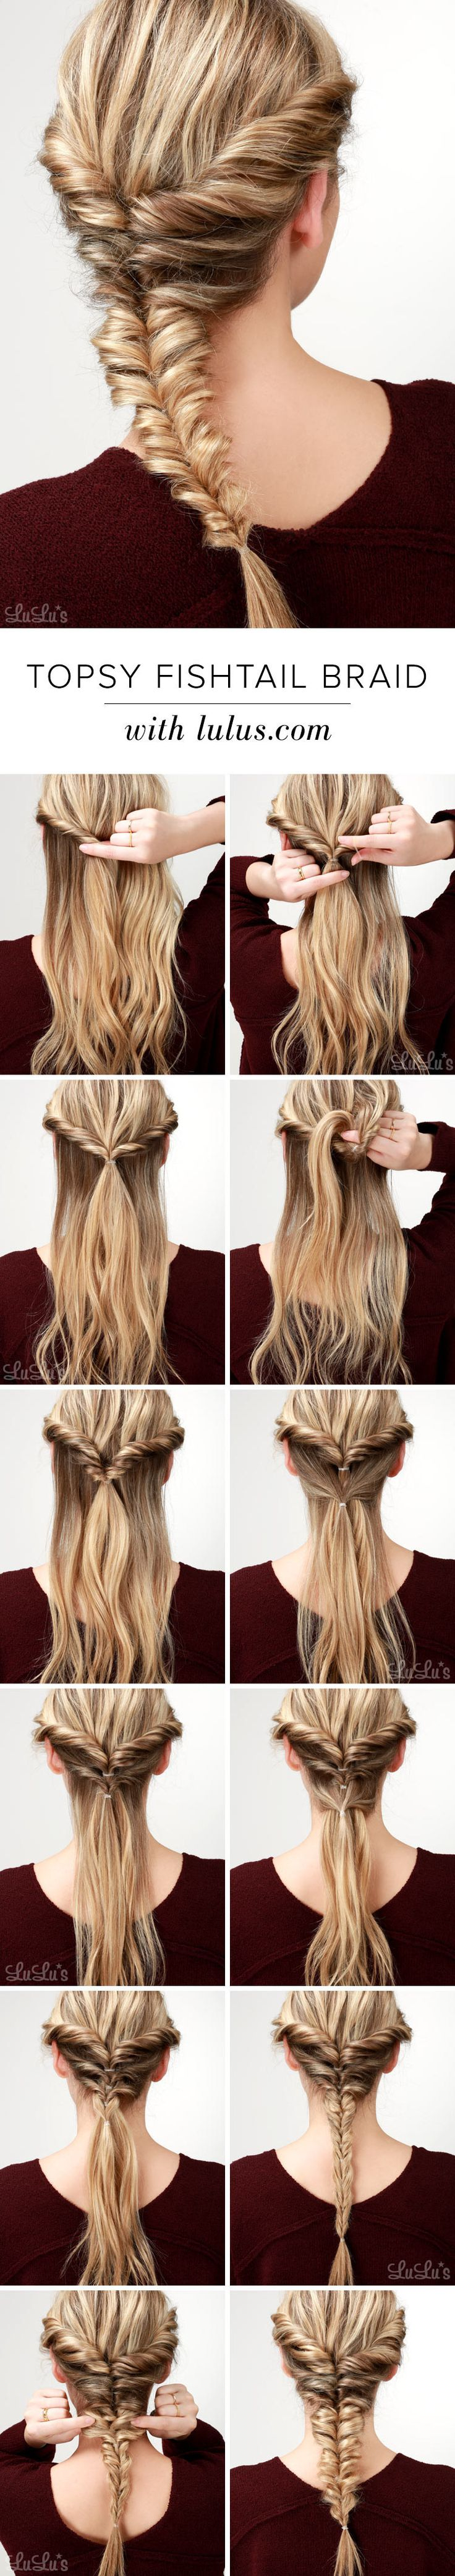 27 Beautiful Ways To Braid Your Hair In 2016